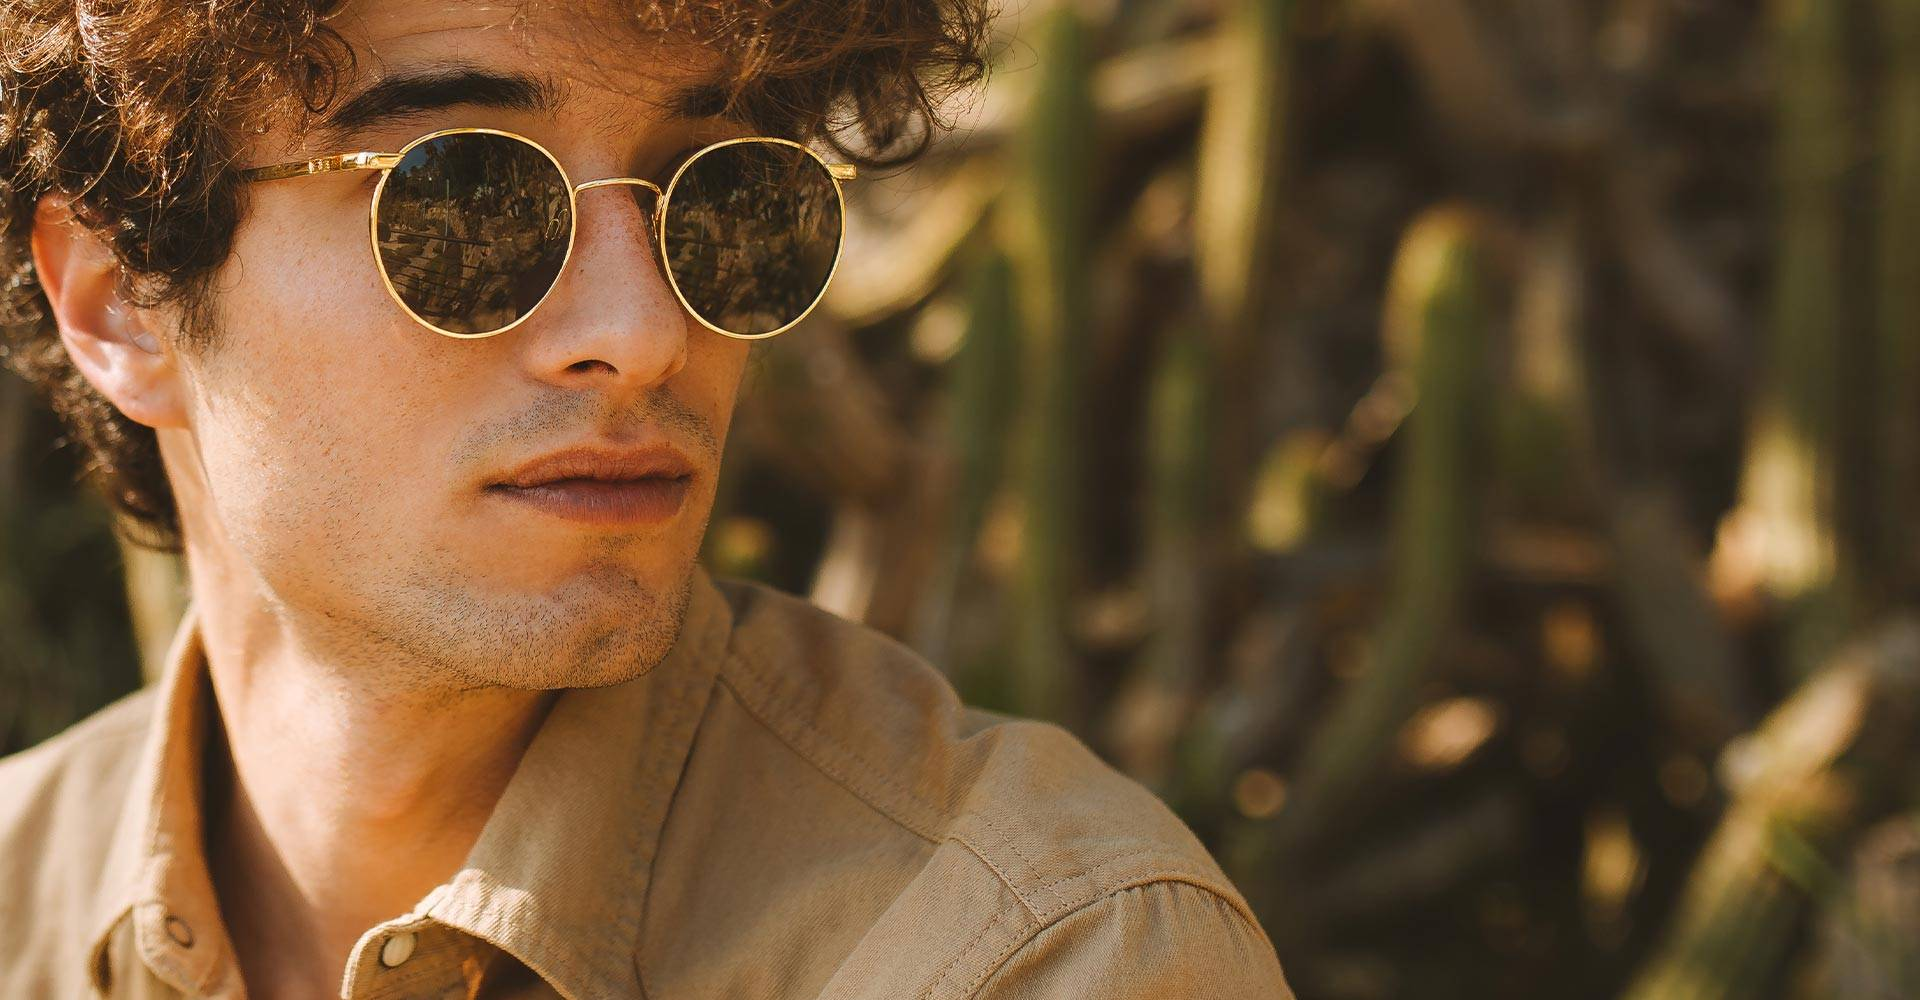 Round Sunglasses for Mens and Women - A style with heritage